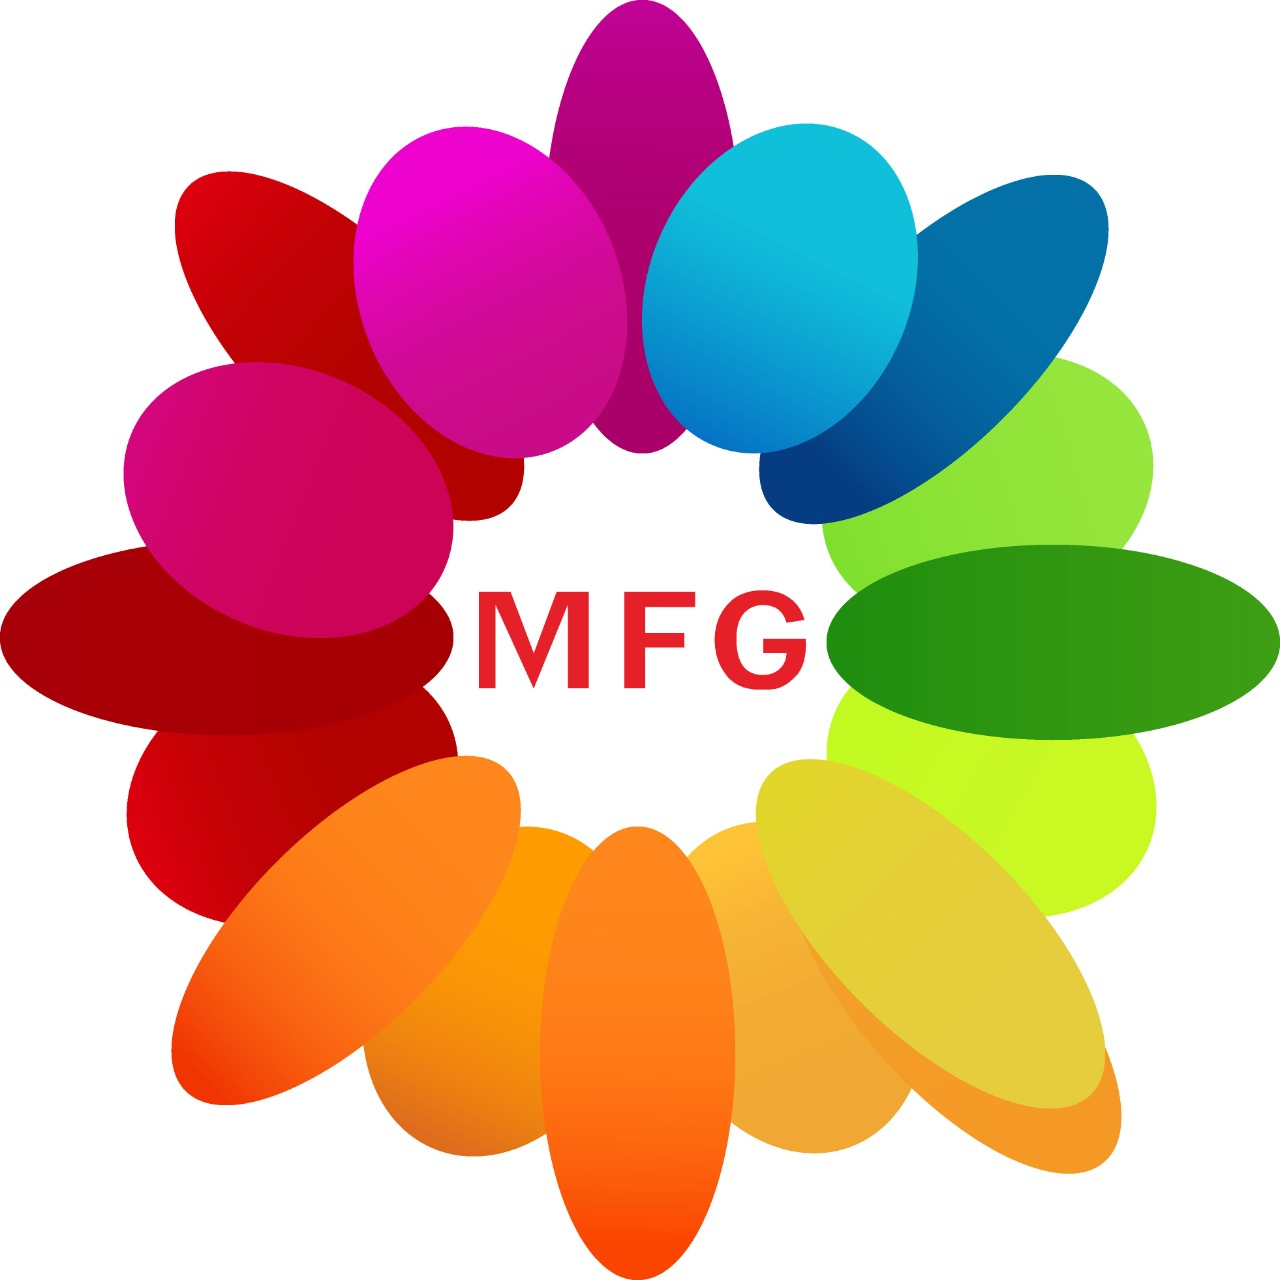 Bunch of 15 red roses with 1 kg chocovanilla premium quality fresh cream cake with chocolate hamper of delicious chocolates